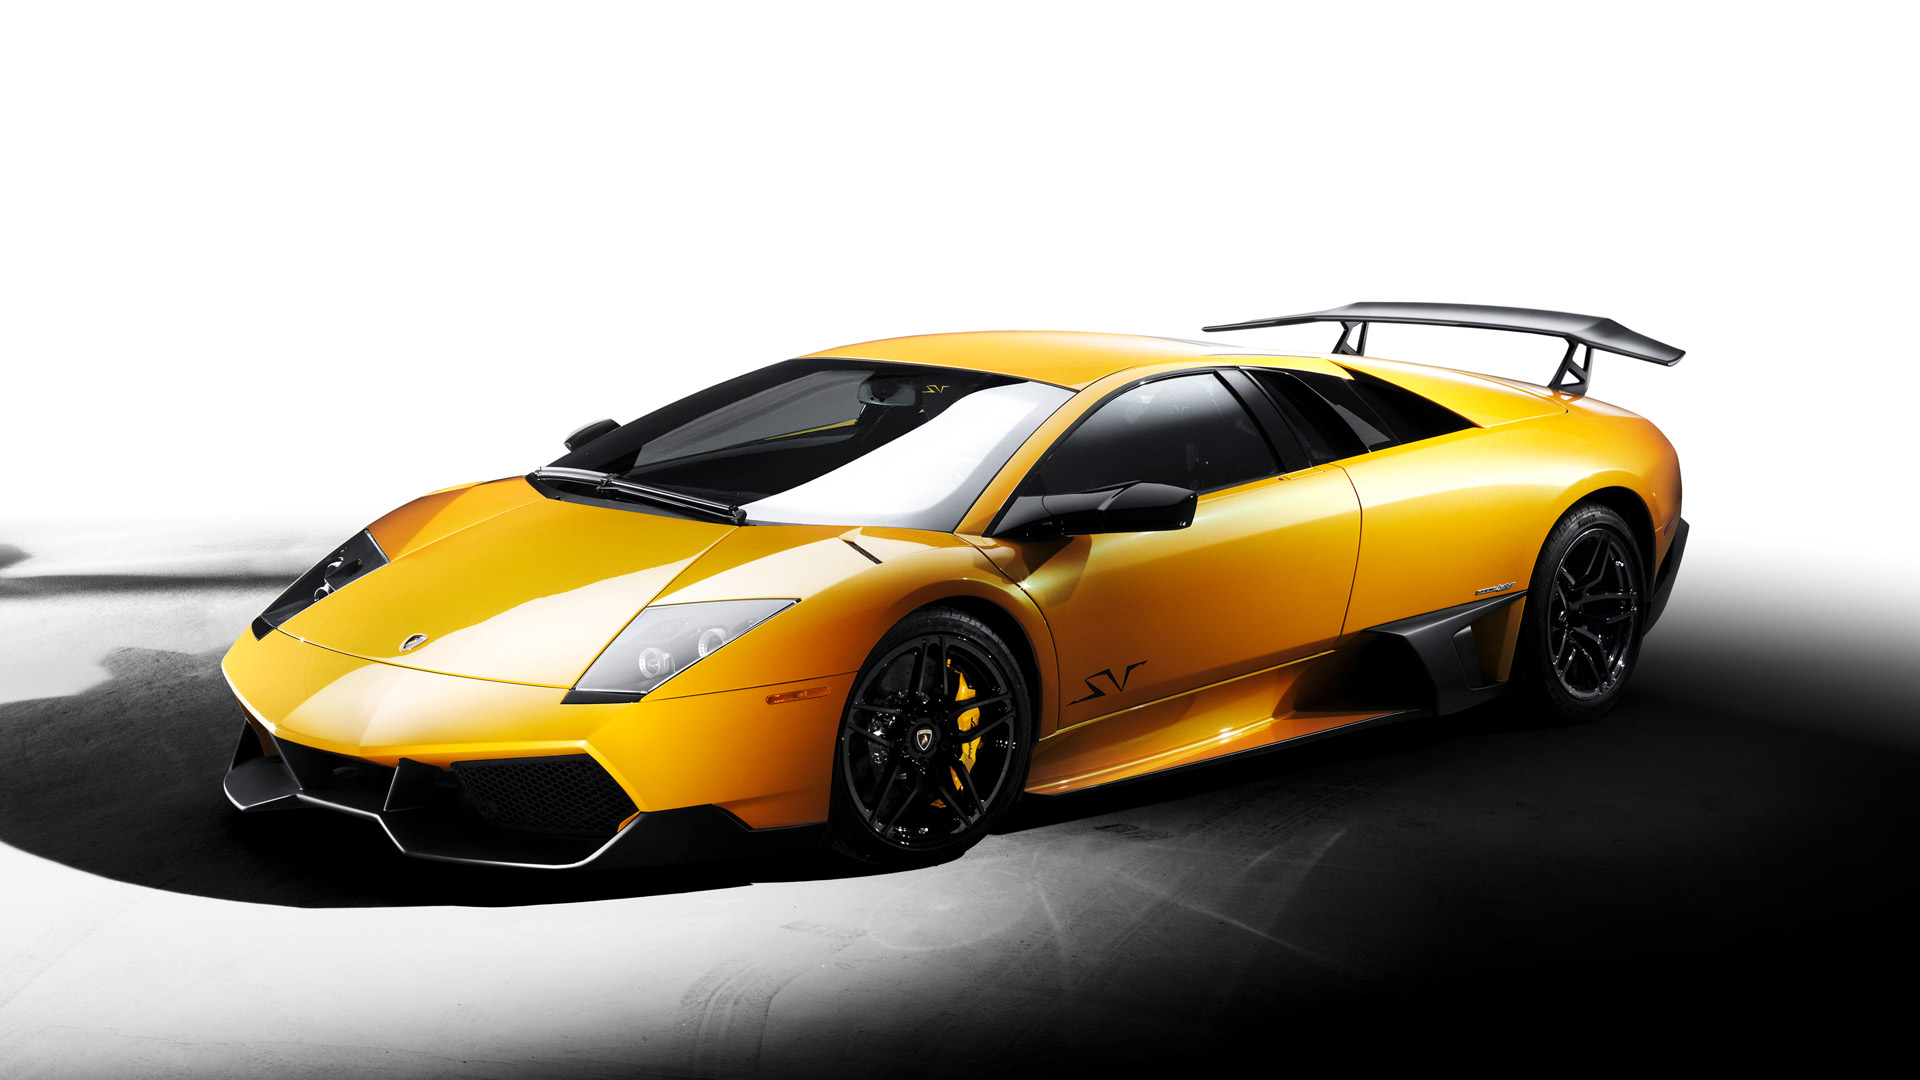 Lamborghini Photos, Informations, Articles - BestCarMag.com on 2014 lamborghini gallardo, 2014 lamborghini enzo, 2014 lamborghini reventon, 2014 lamborghini elemento, 2014 lamborghini countach, 2014 lamborghini diablo, 2014 lamborghini gt, 2014 lamborghini may, 2014 lamborghini tron, 2014 lamborghini cabrera, 2014 lamborghini california, 2014 lamborghini huracan, 2014 lamborghini estoque, 2014 lamborghini suv, 2014 lamborghini superveloce, 2014 lamborghini aventador, 2014 lamborghini truck, 2014 lamborghini interior, 2014 lamborghini egoista, 2014 lamborghini wallpaper hd,